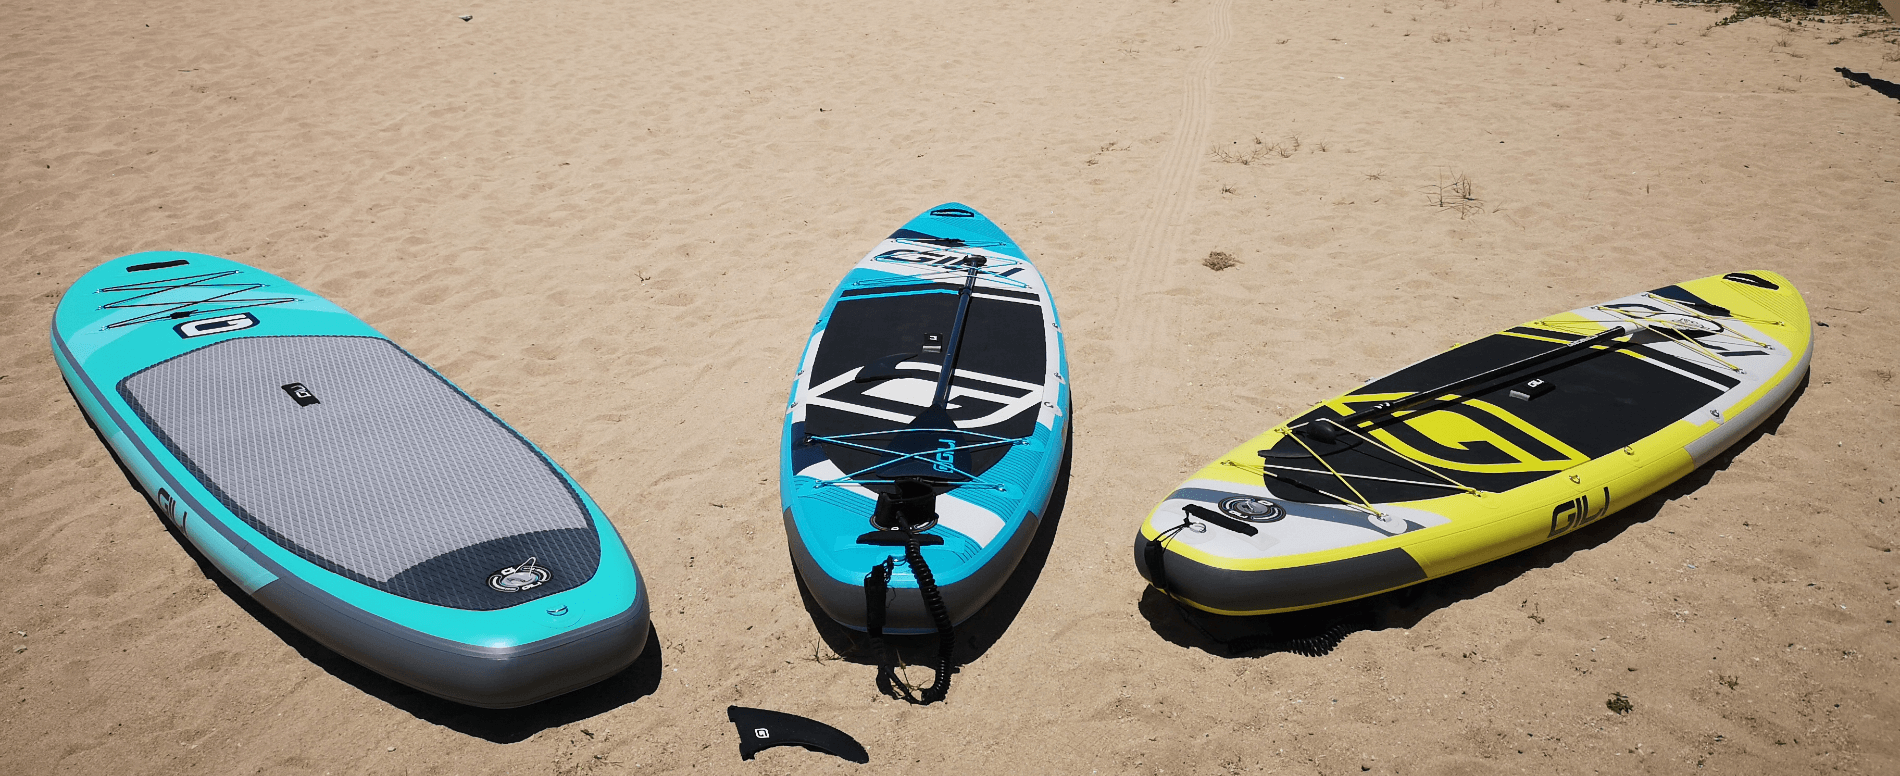 Paddle Board Prices - How Much Do Paddle Boards Cost?